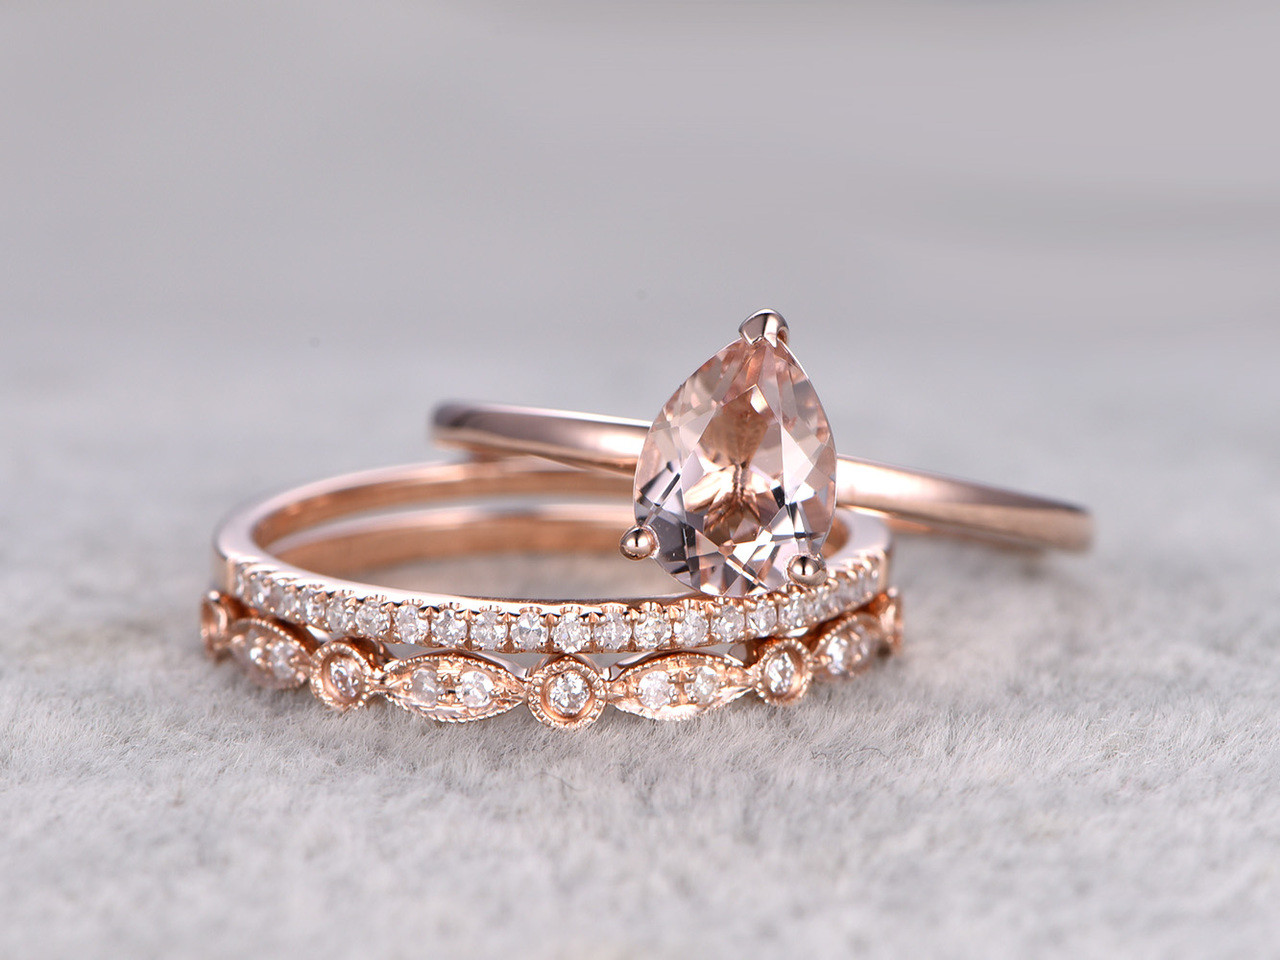 3pcs Pear Shaped Solitaire Morganite Wedding Set Antique Diamond Bridal Ring